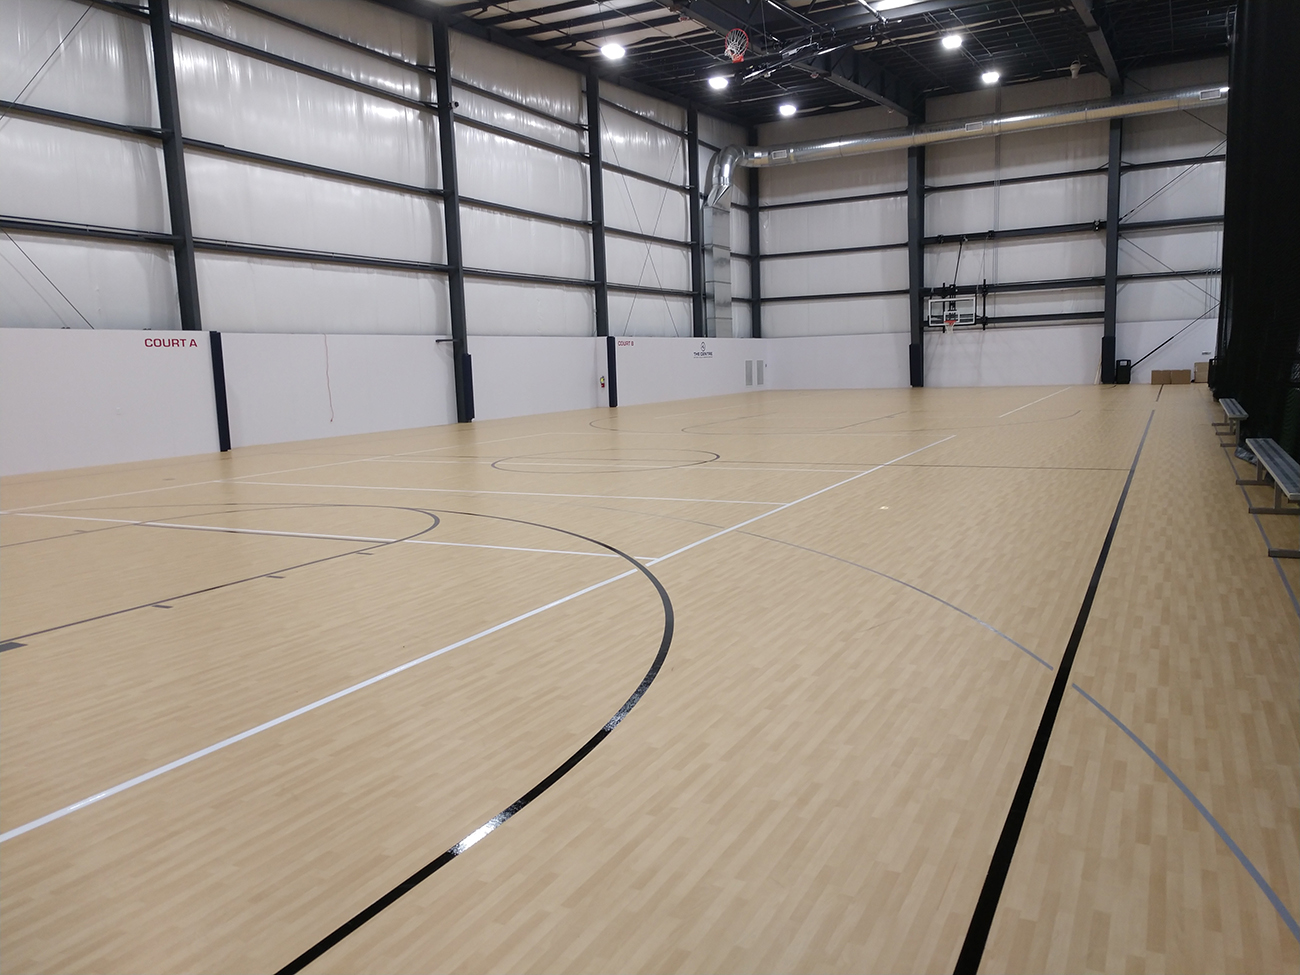 The Centre, retractable basketball net, basketball, flooring